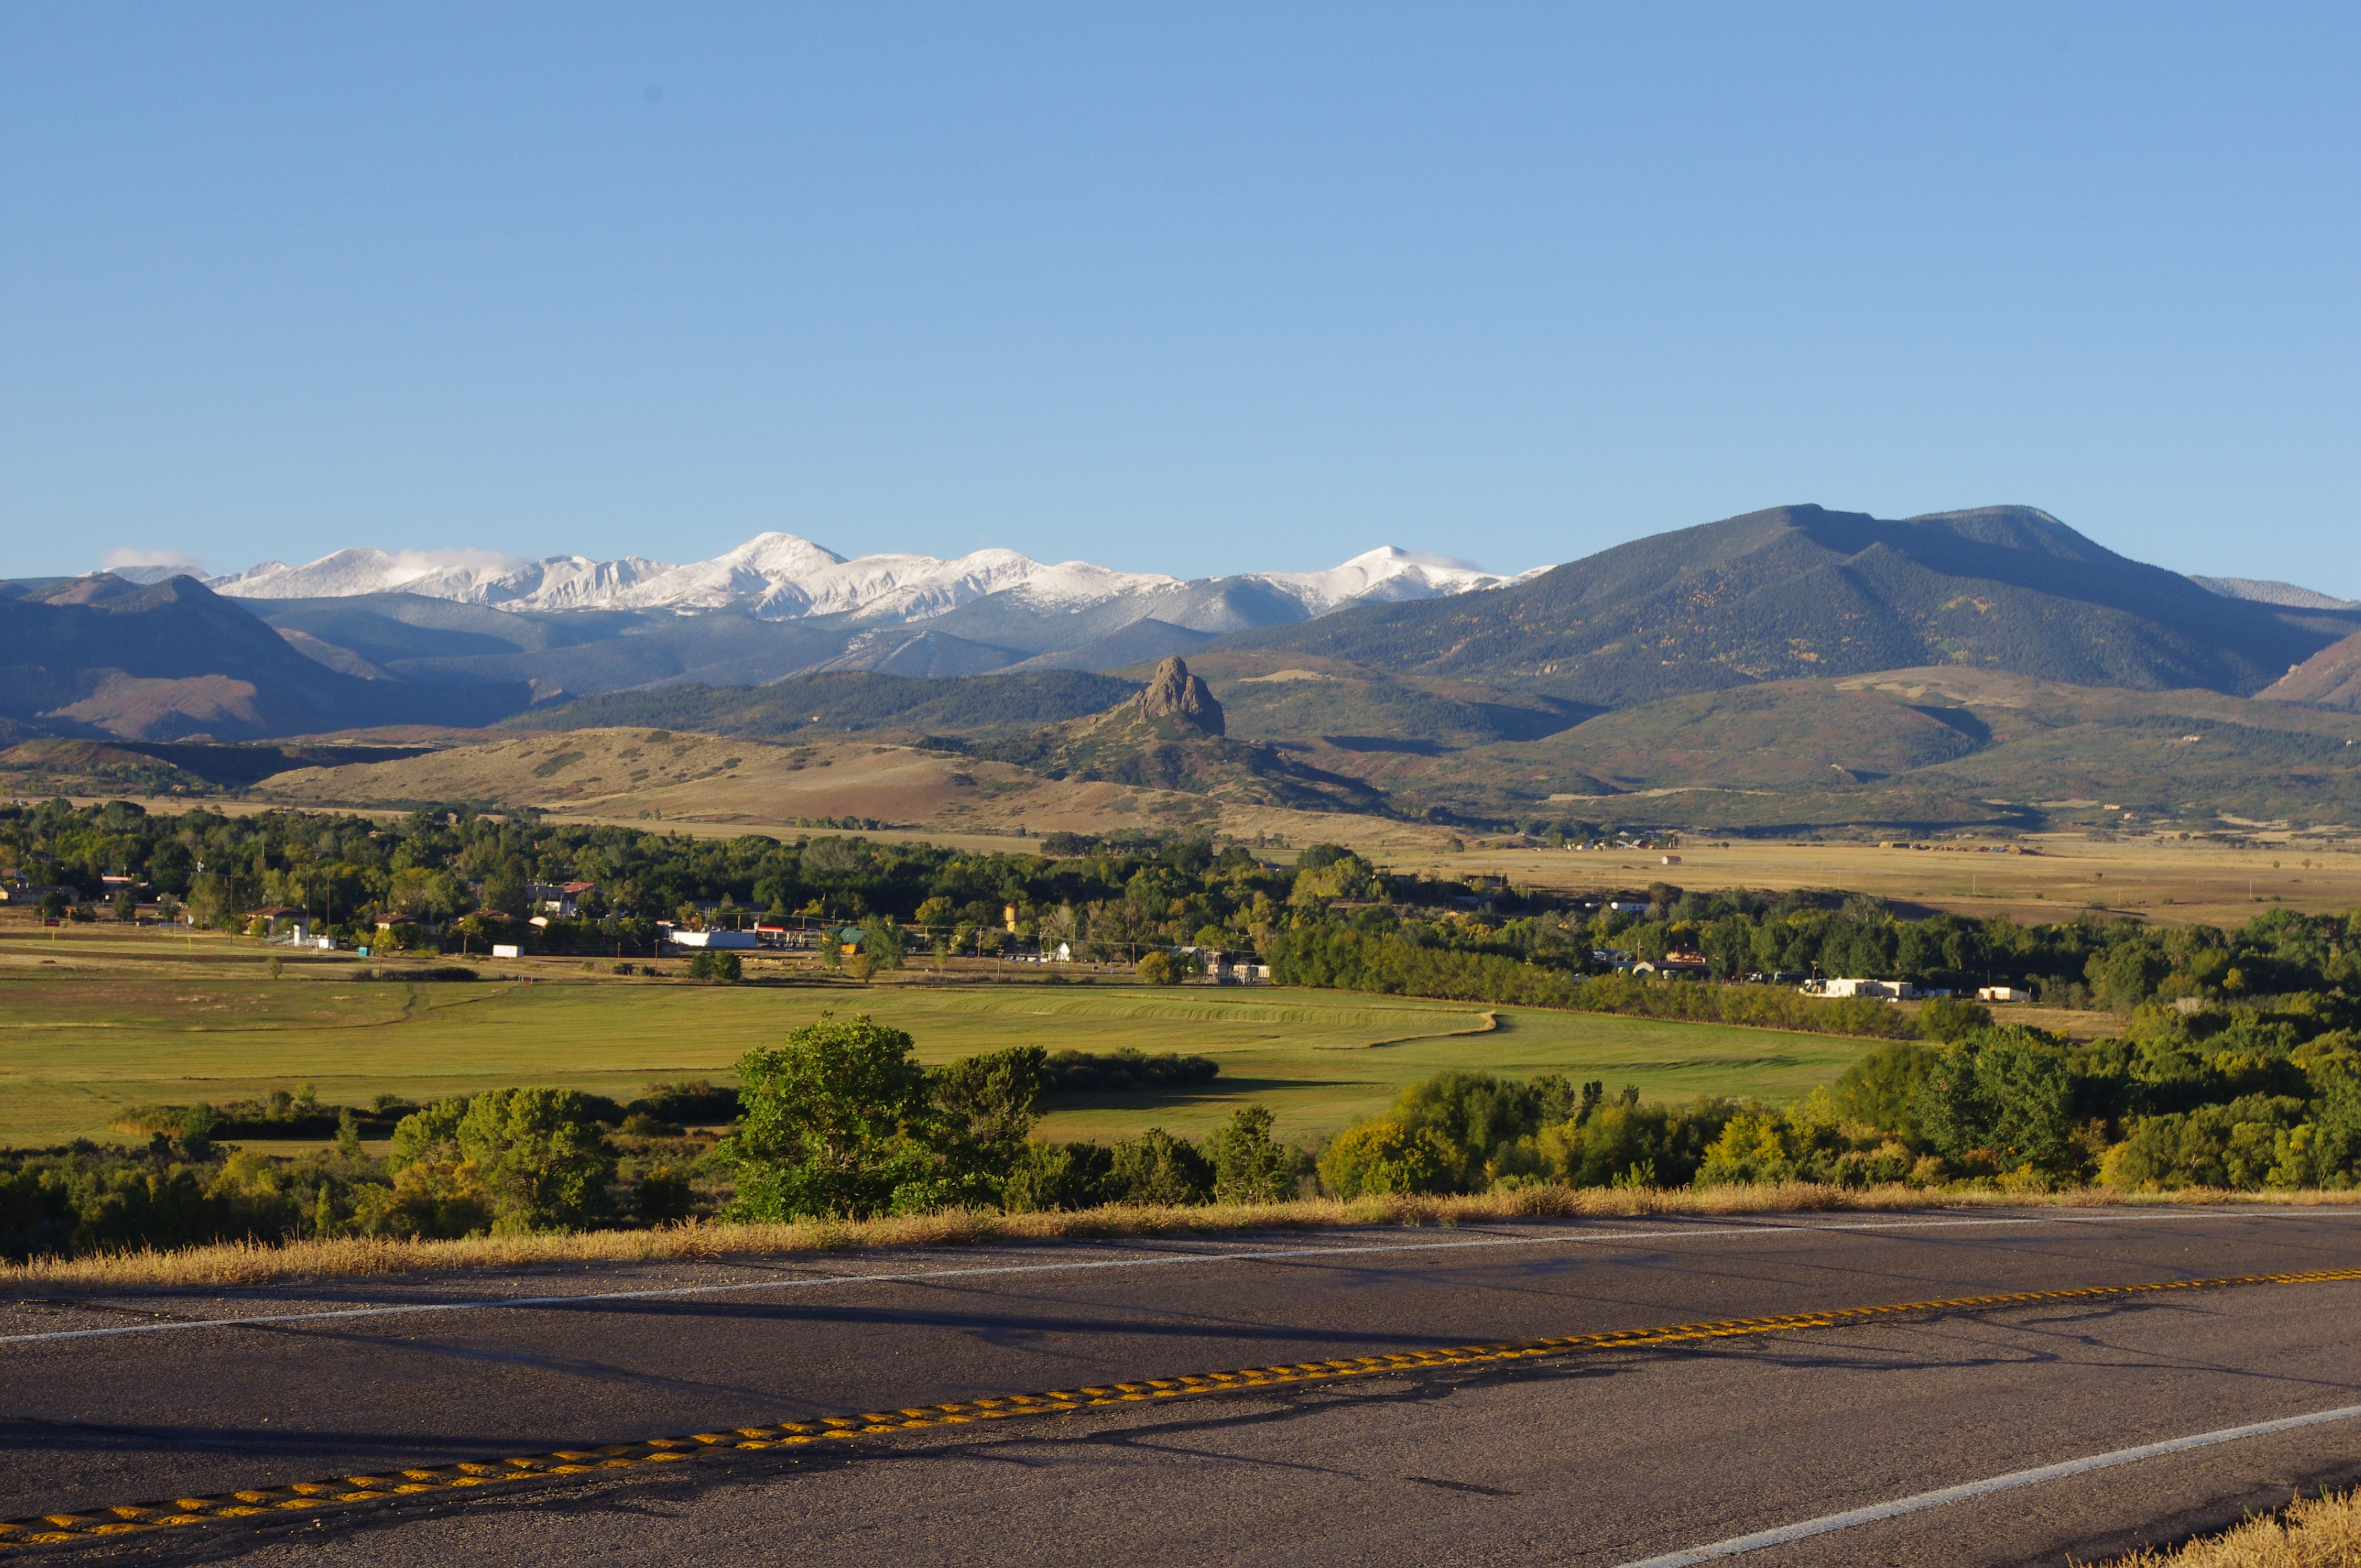 View of La Veta valley from highway